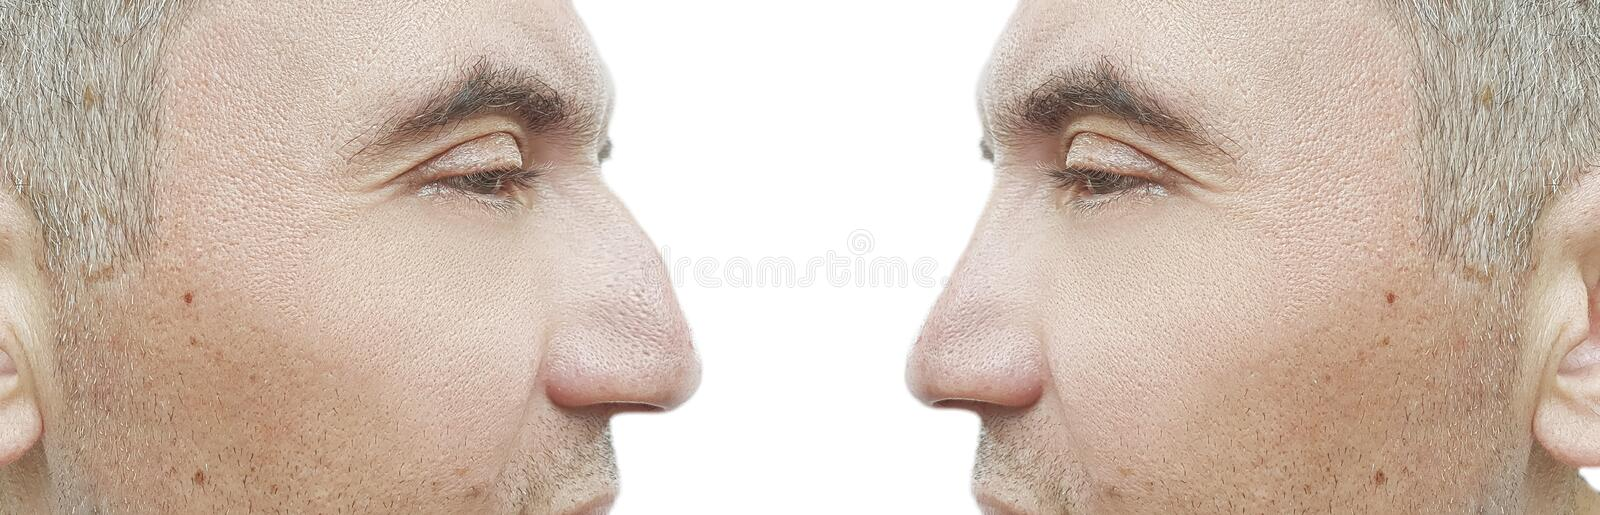 Man nose hump before and after problem treatment comparative. Man nose hump before and after treatment collage comparative problem stock photos